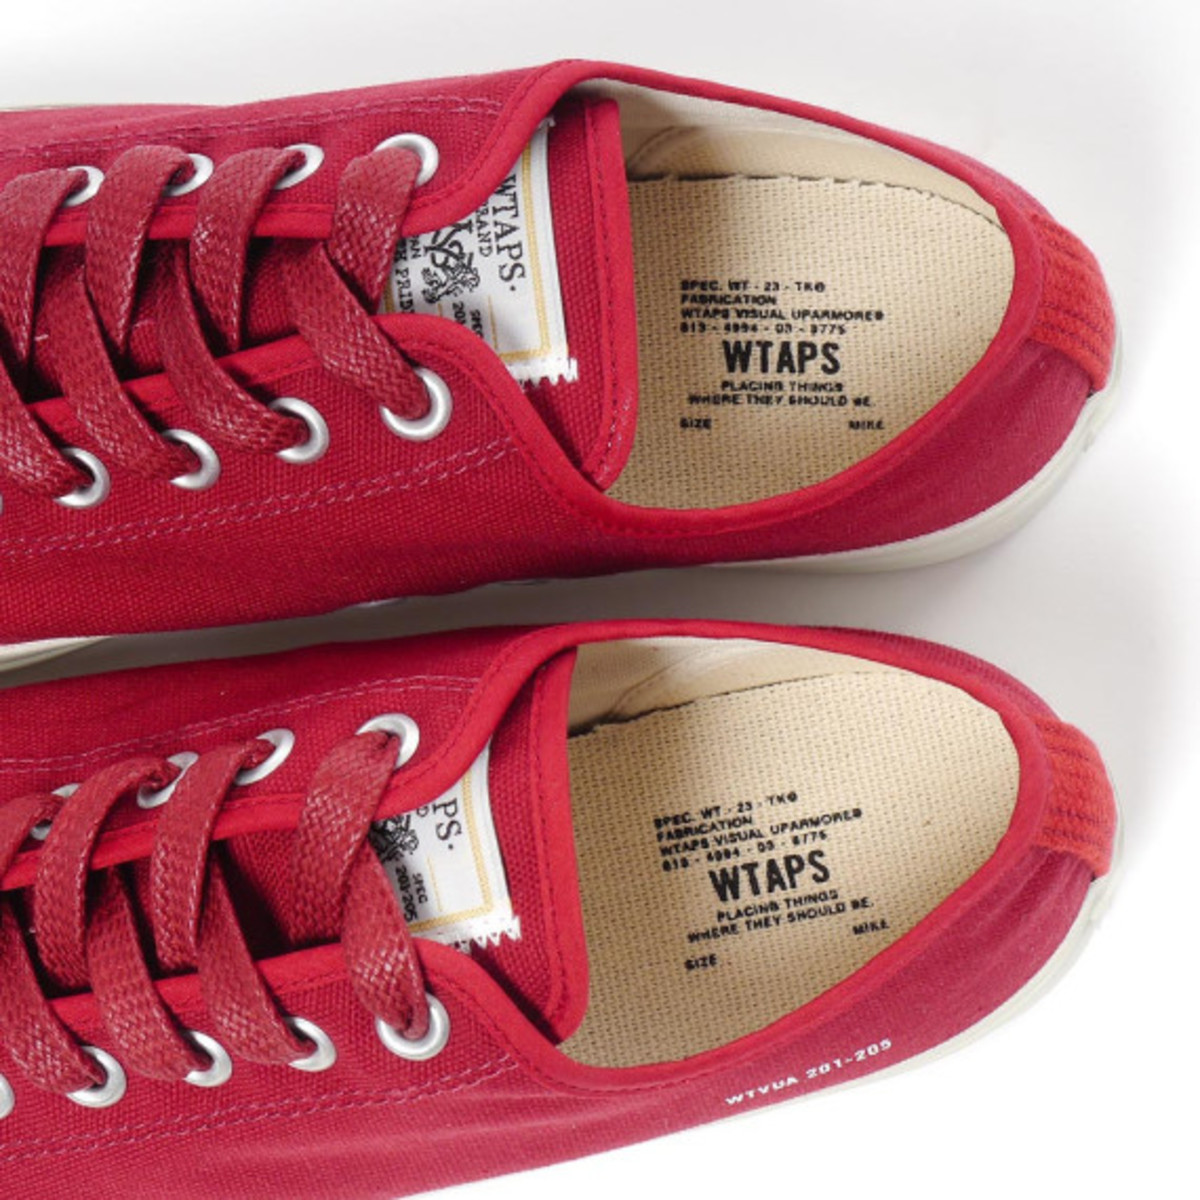 wtaps-spring-summer-2013-canvas-sneakers-09